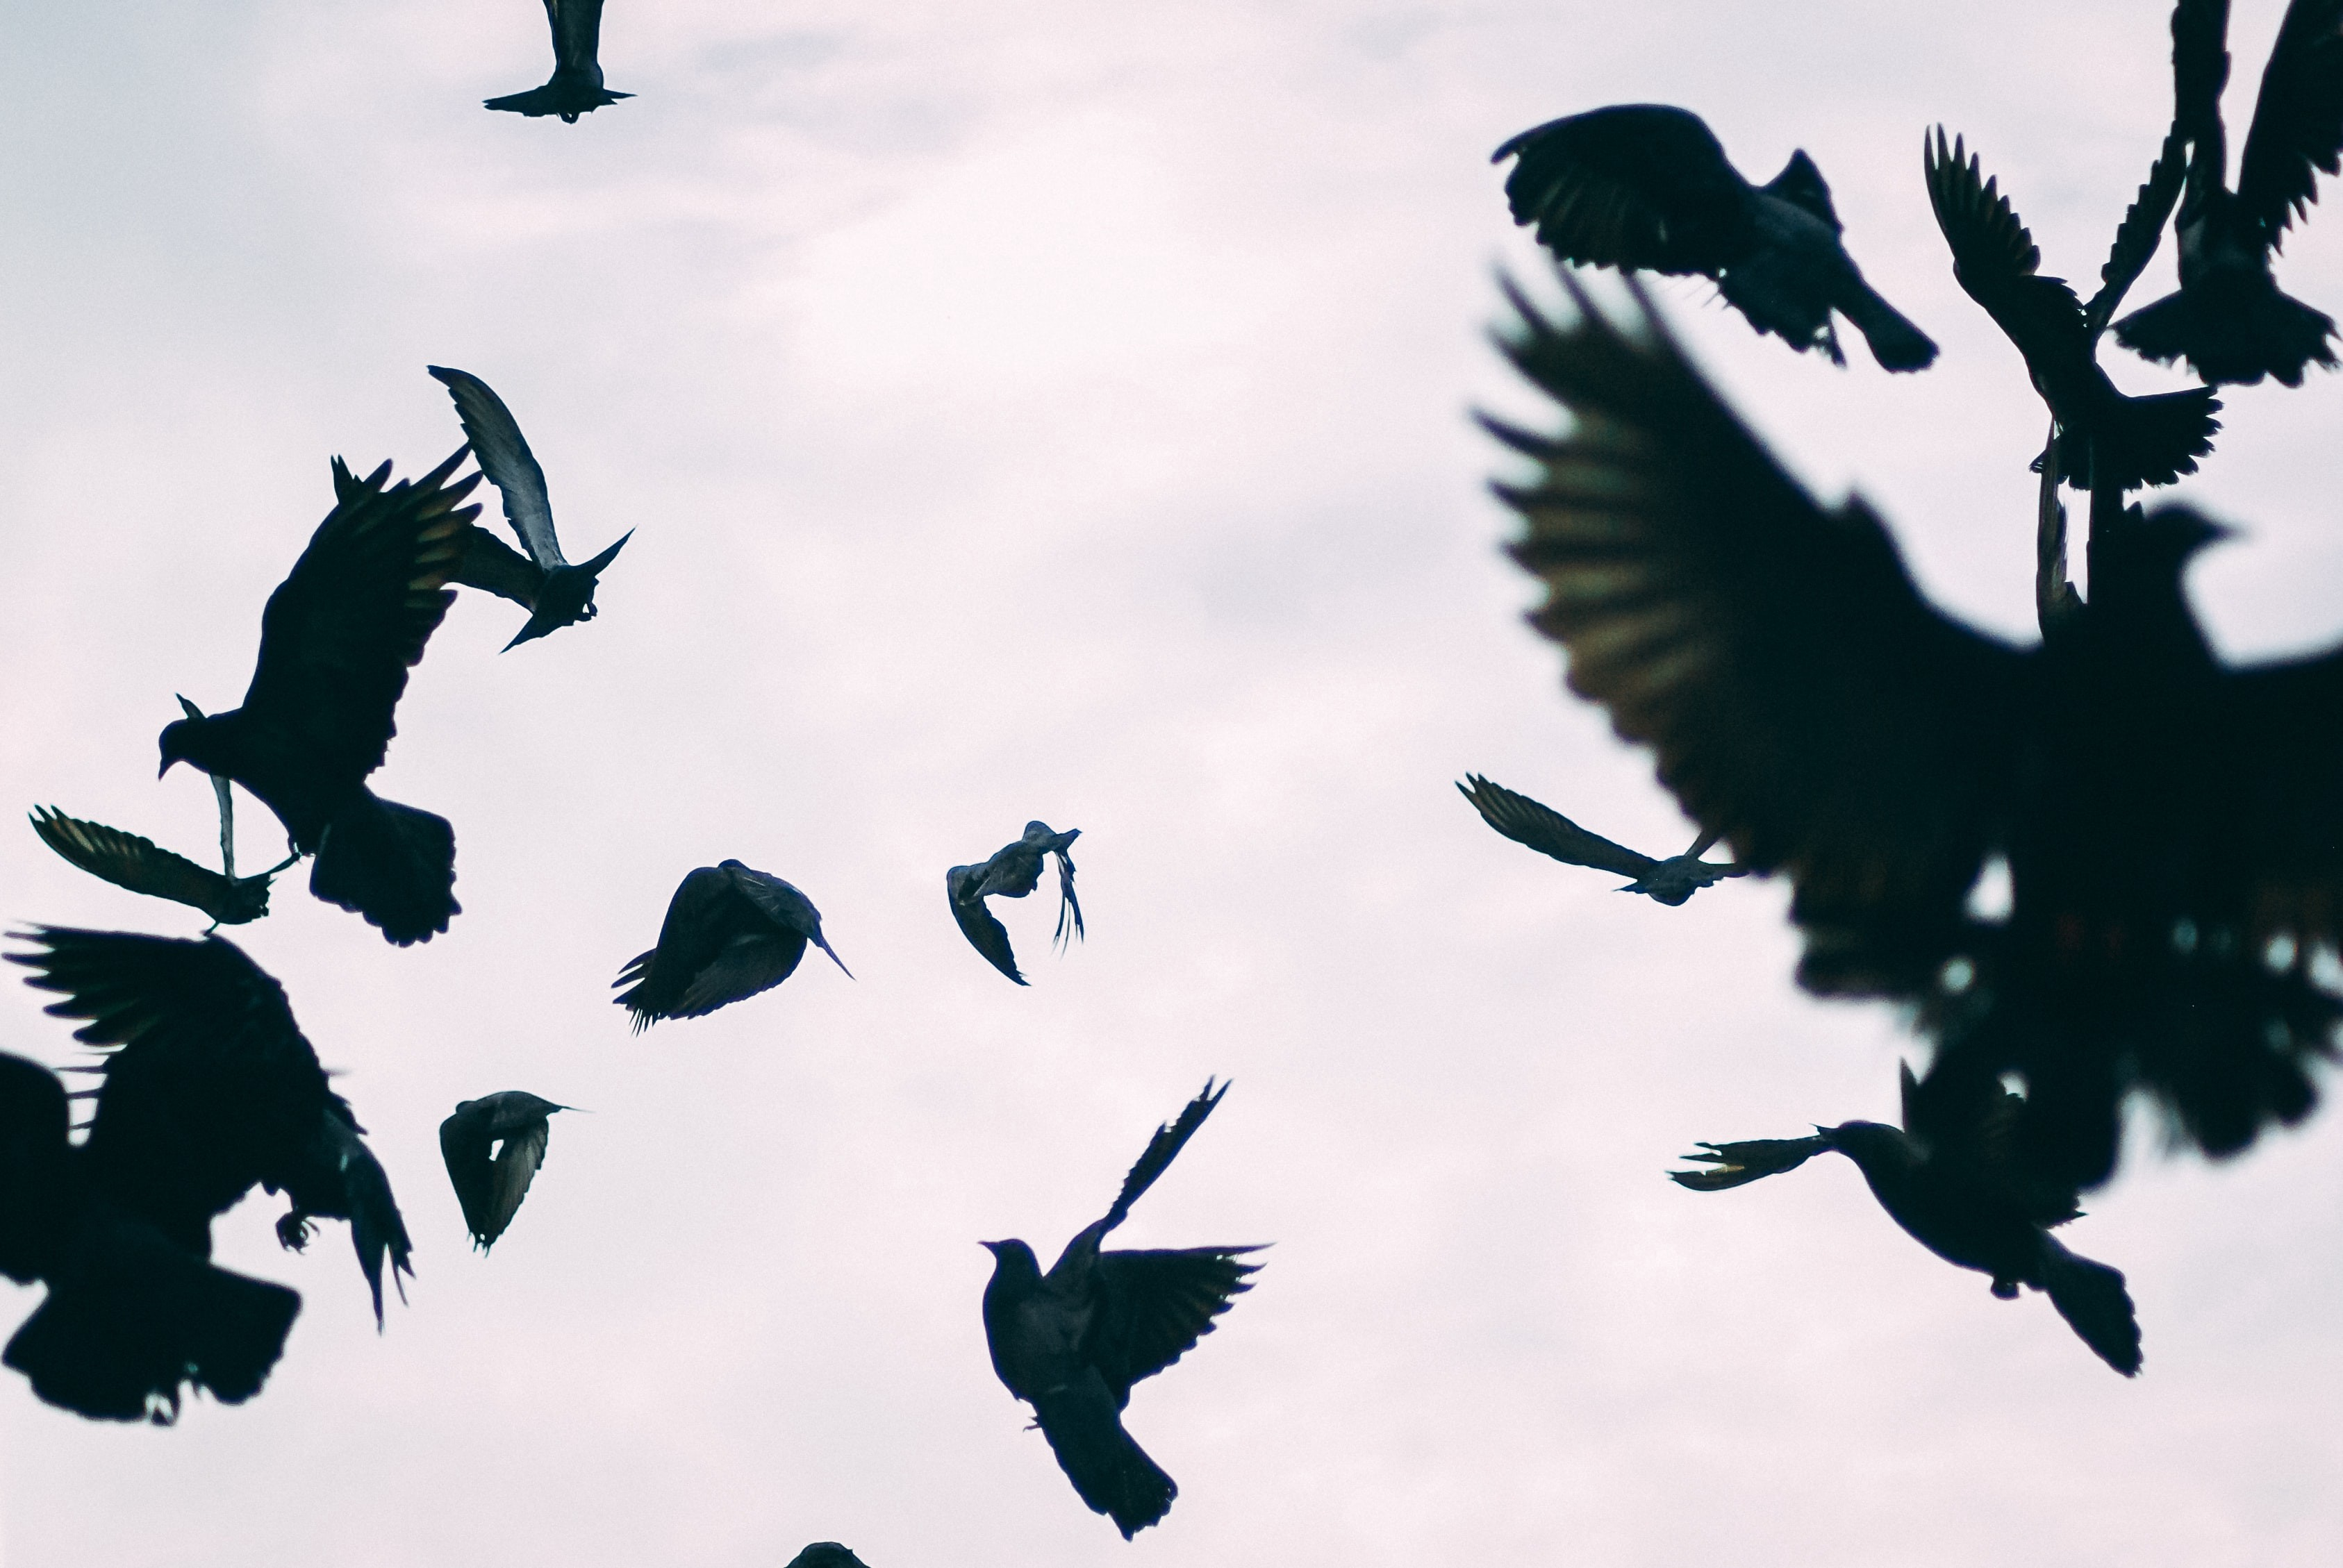 chaotic scene of dark birds flying into a grey sky